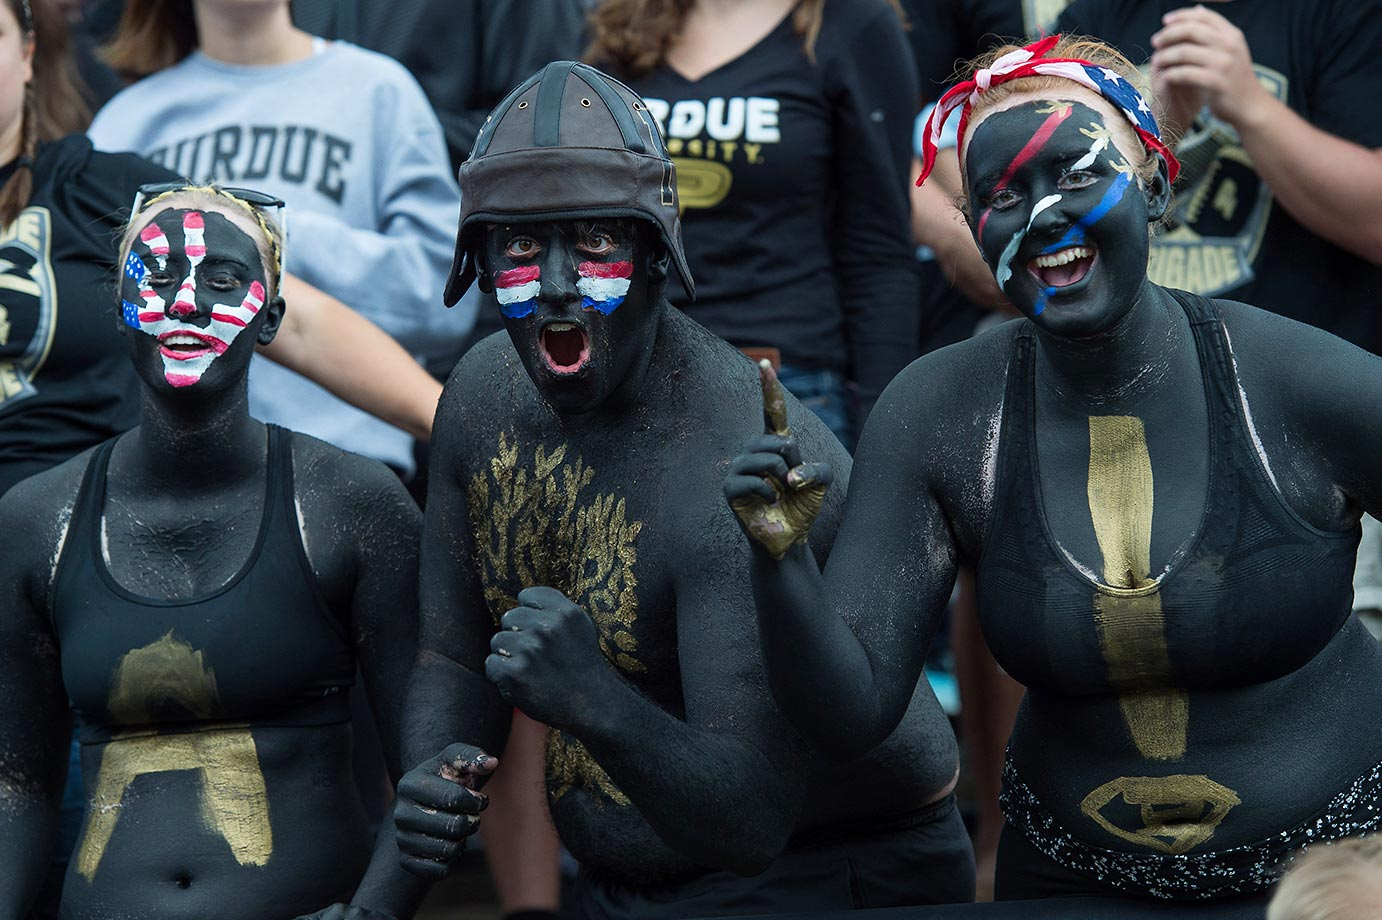 Purdue students celebrate a touchdown against Indiana State.